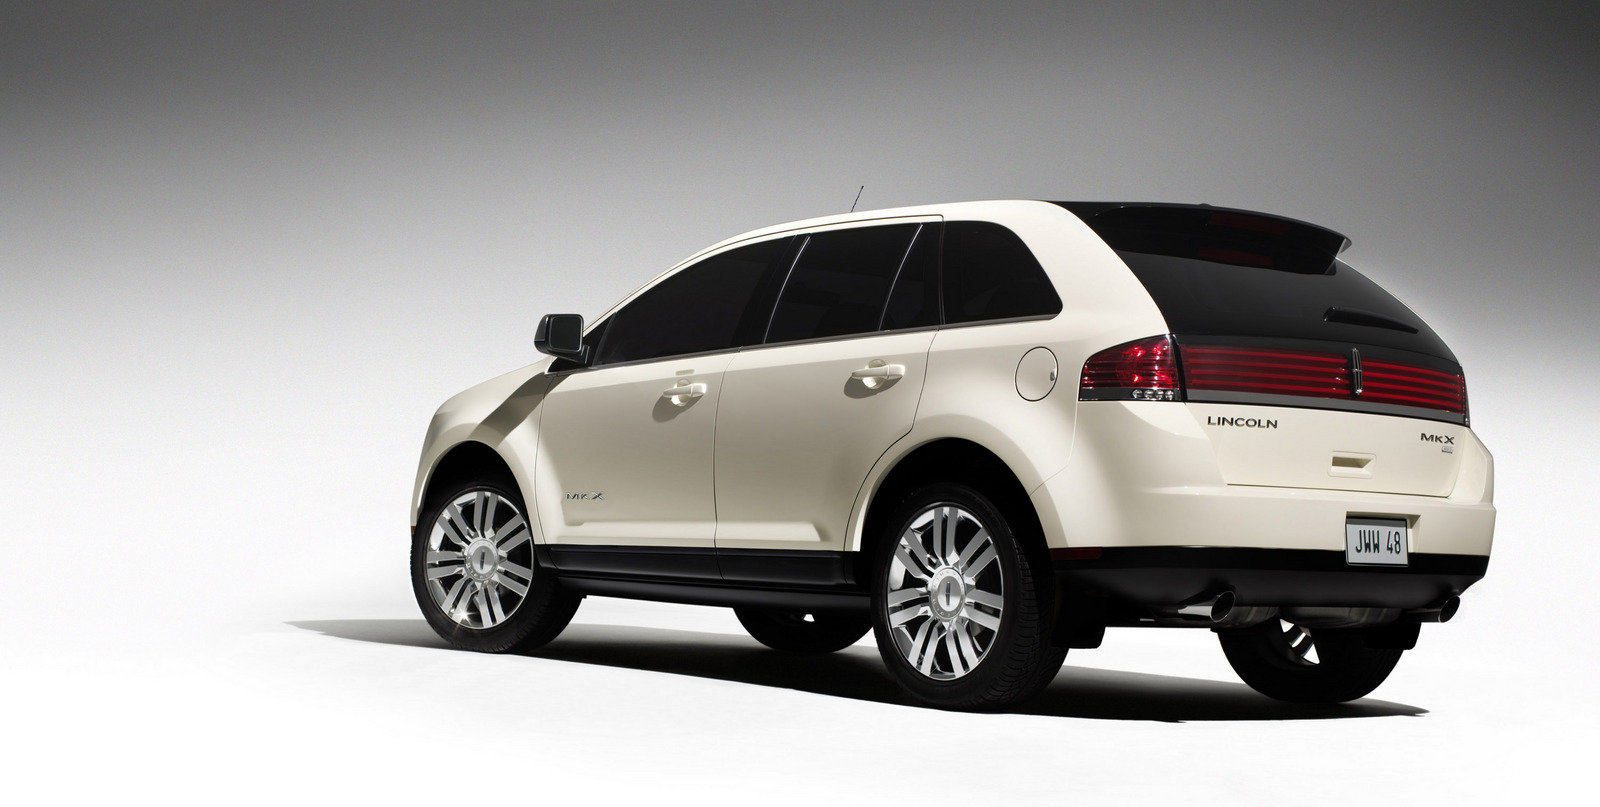 2007 lincoln mkx picture 93803 car review top speed. Black Bedroom Furniture Sets. Home Design Ideas